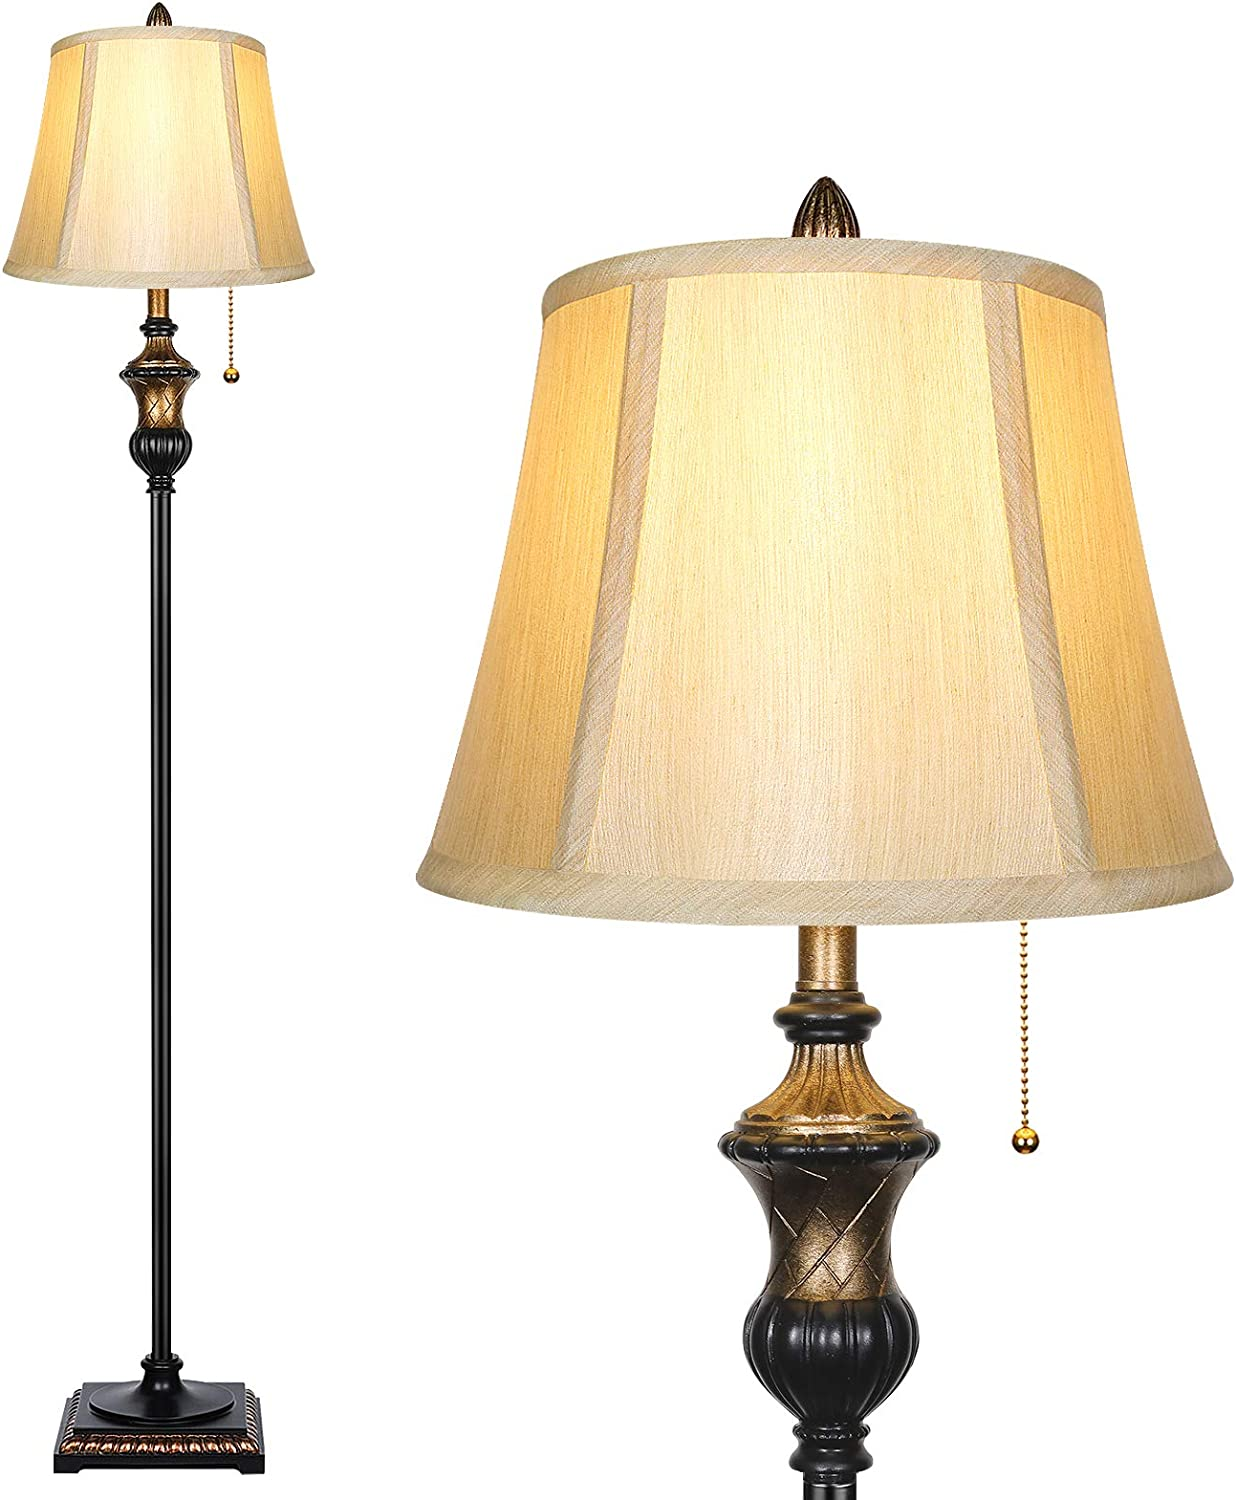 TOBUSA Traditional Floor Lamp, Classic Standing Lamp with Bronze Fabric Shade, Vintage Elegant Tall Pole Lamp for Living Room Bedroom Office Reading, Rustic Upright Floor Lights , Pull Chain Switch